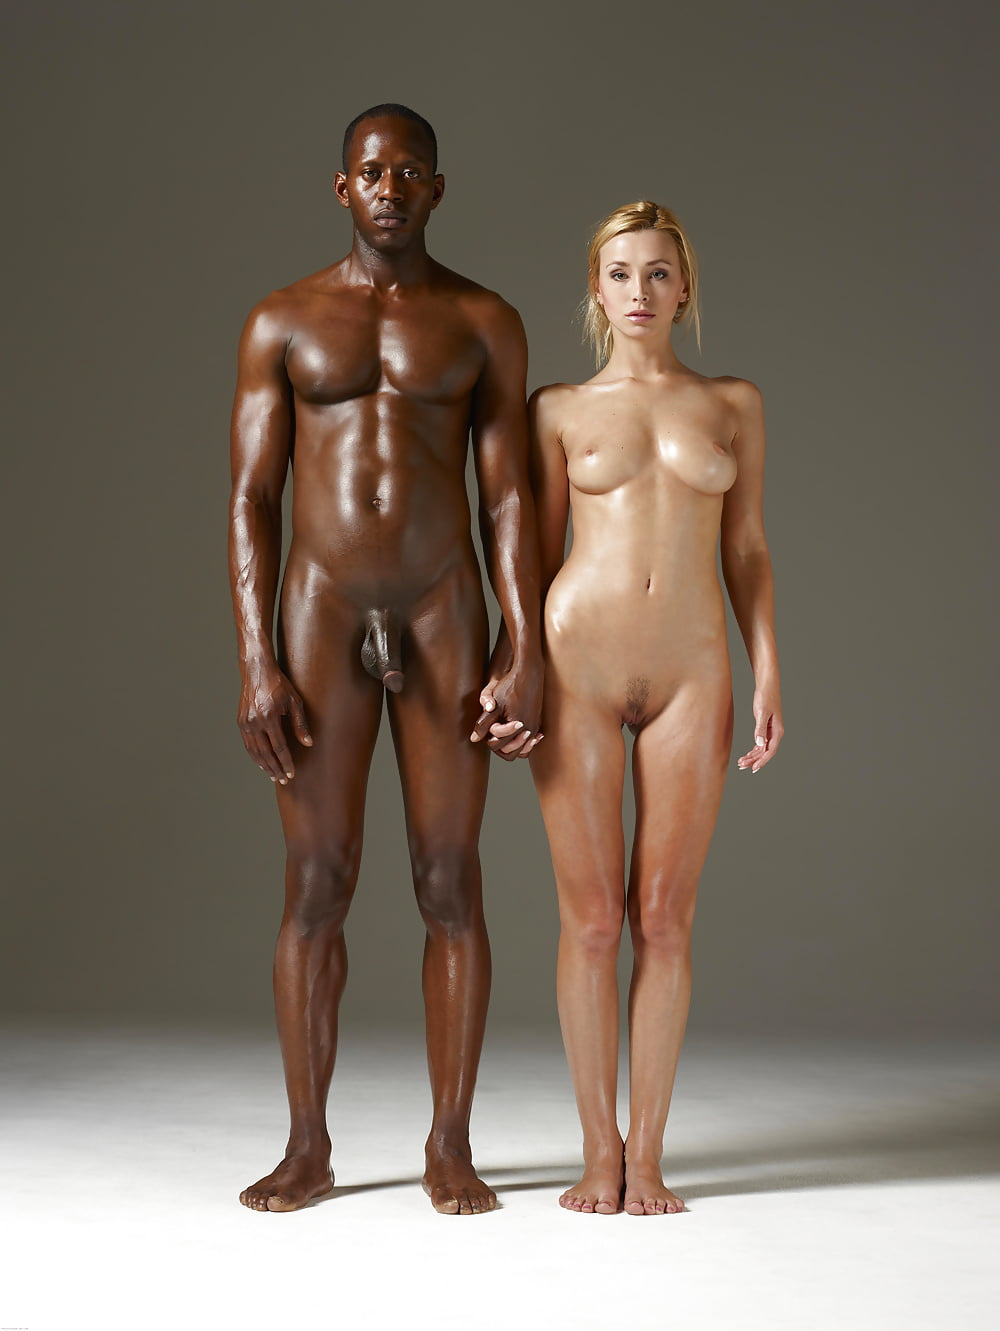 naked-girl-being-held-by-man